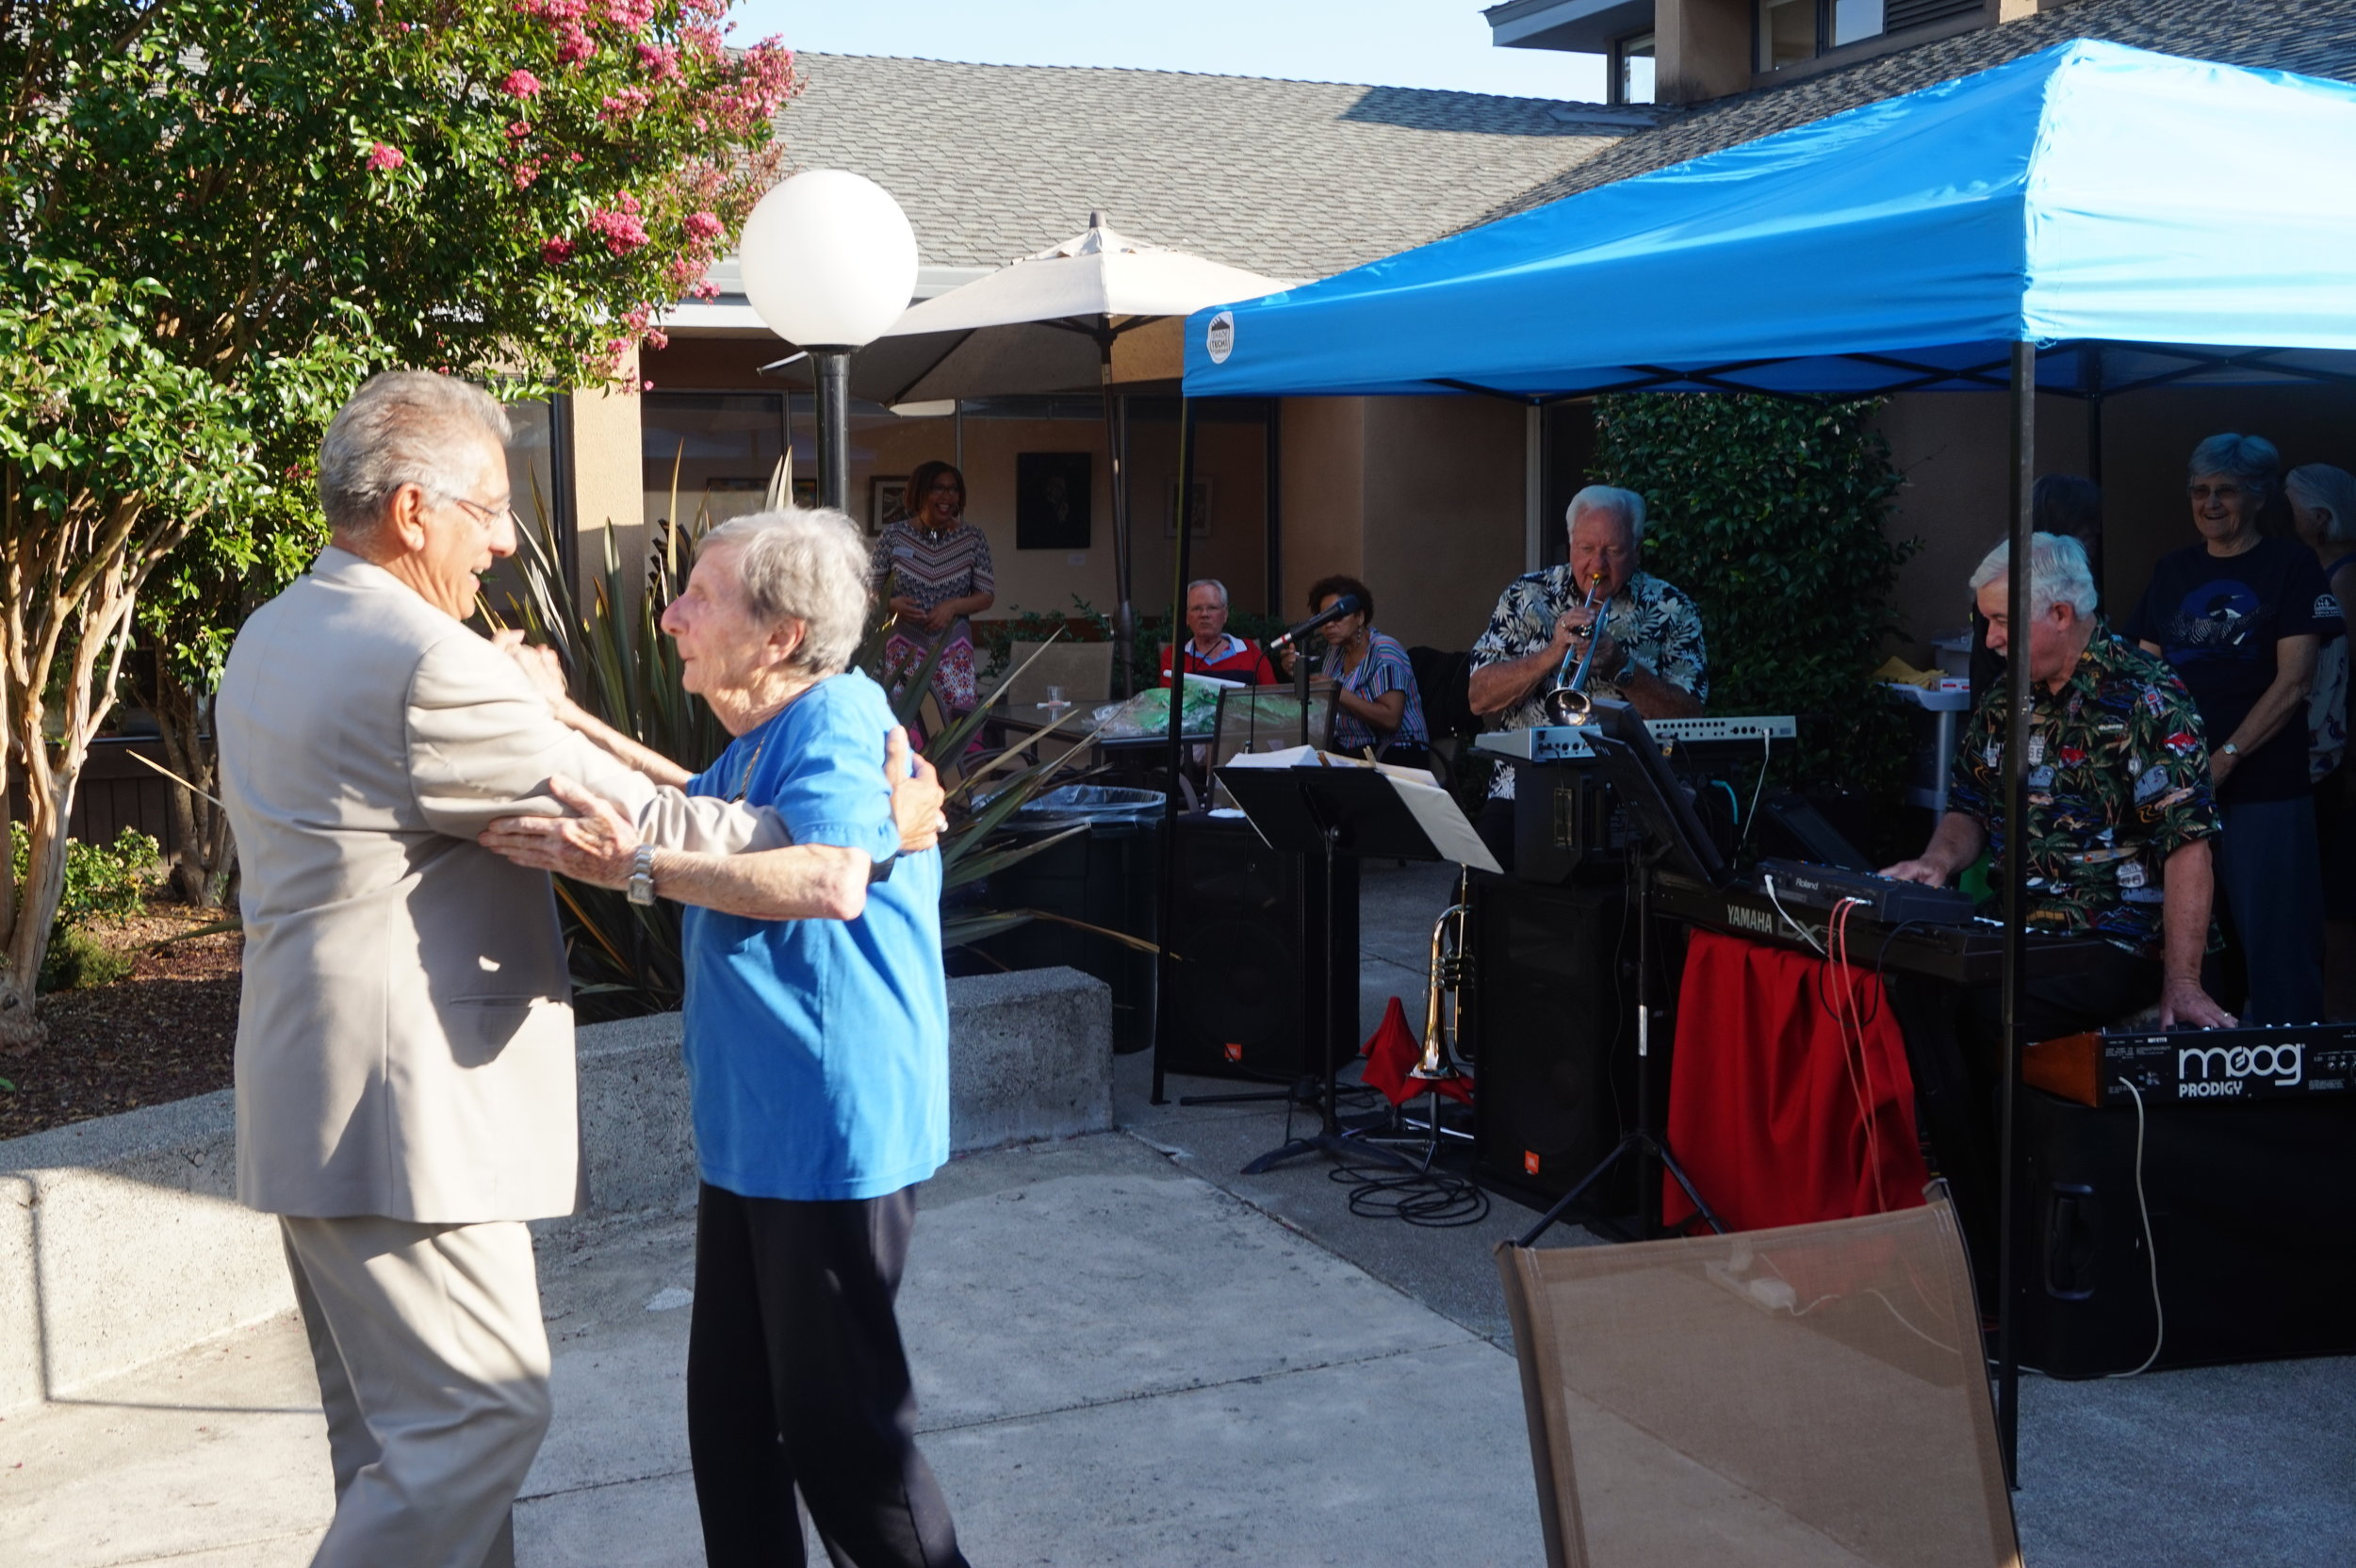 Our resident,Vera dancing at our annual Jazz in July event to the wonderful music of Jess Petty and Ken Chambers.